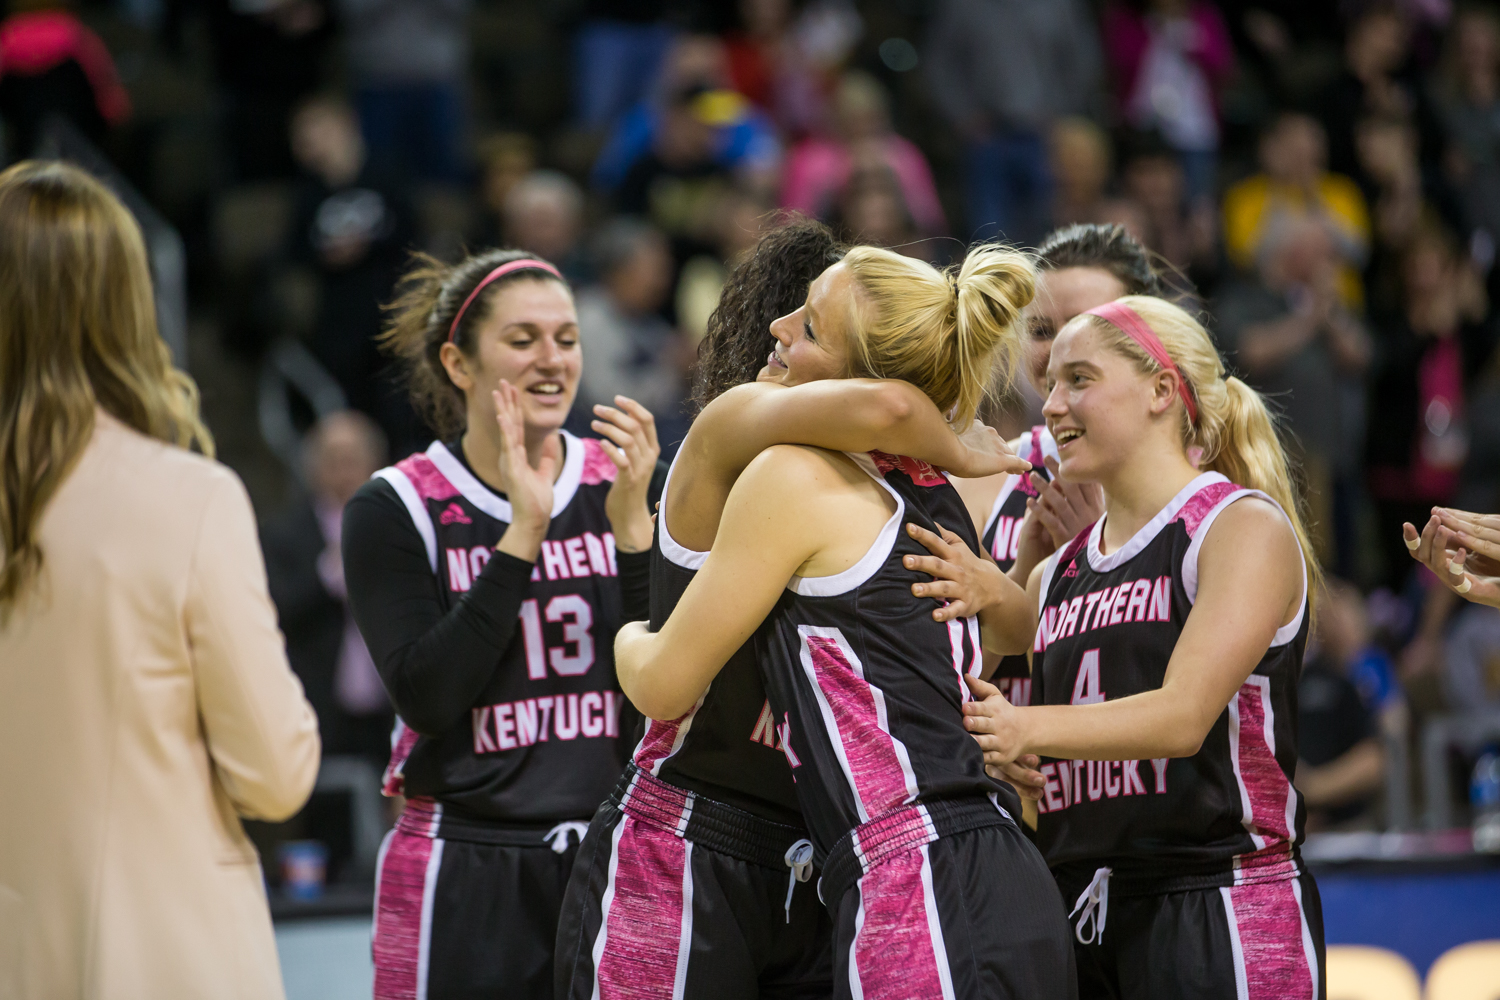 NKU+players+hug+Taryn+Taugher+%2811%29+on+the+court+after+the+game+against+Cleveland+State.+The+win+over+Cleveland+State+gives+them+a+6-0+winning+streak+at+home.